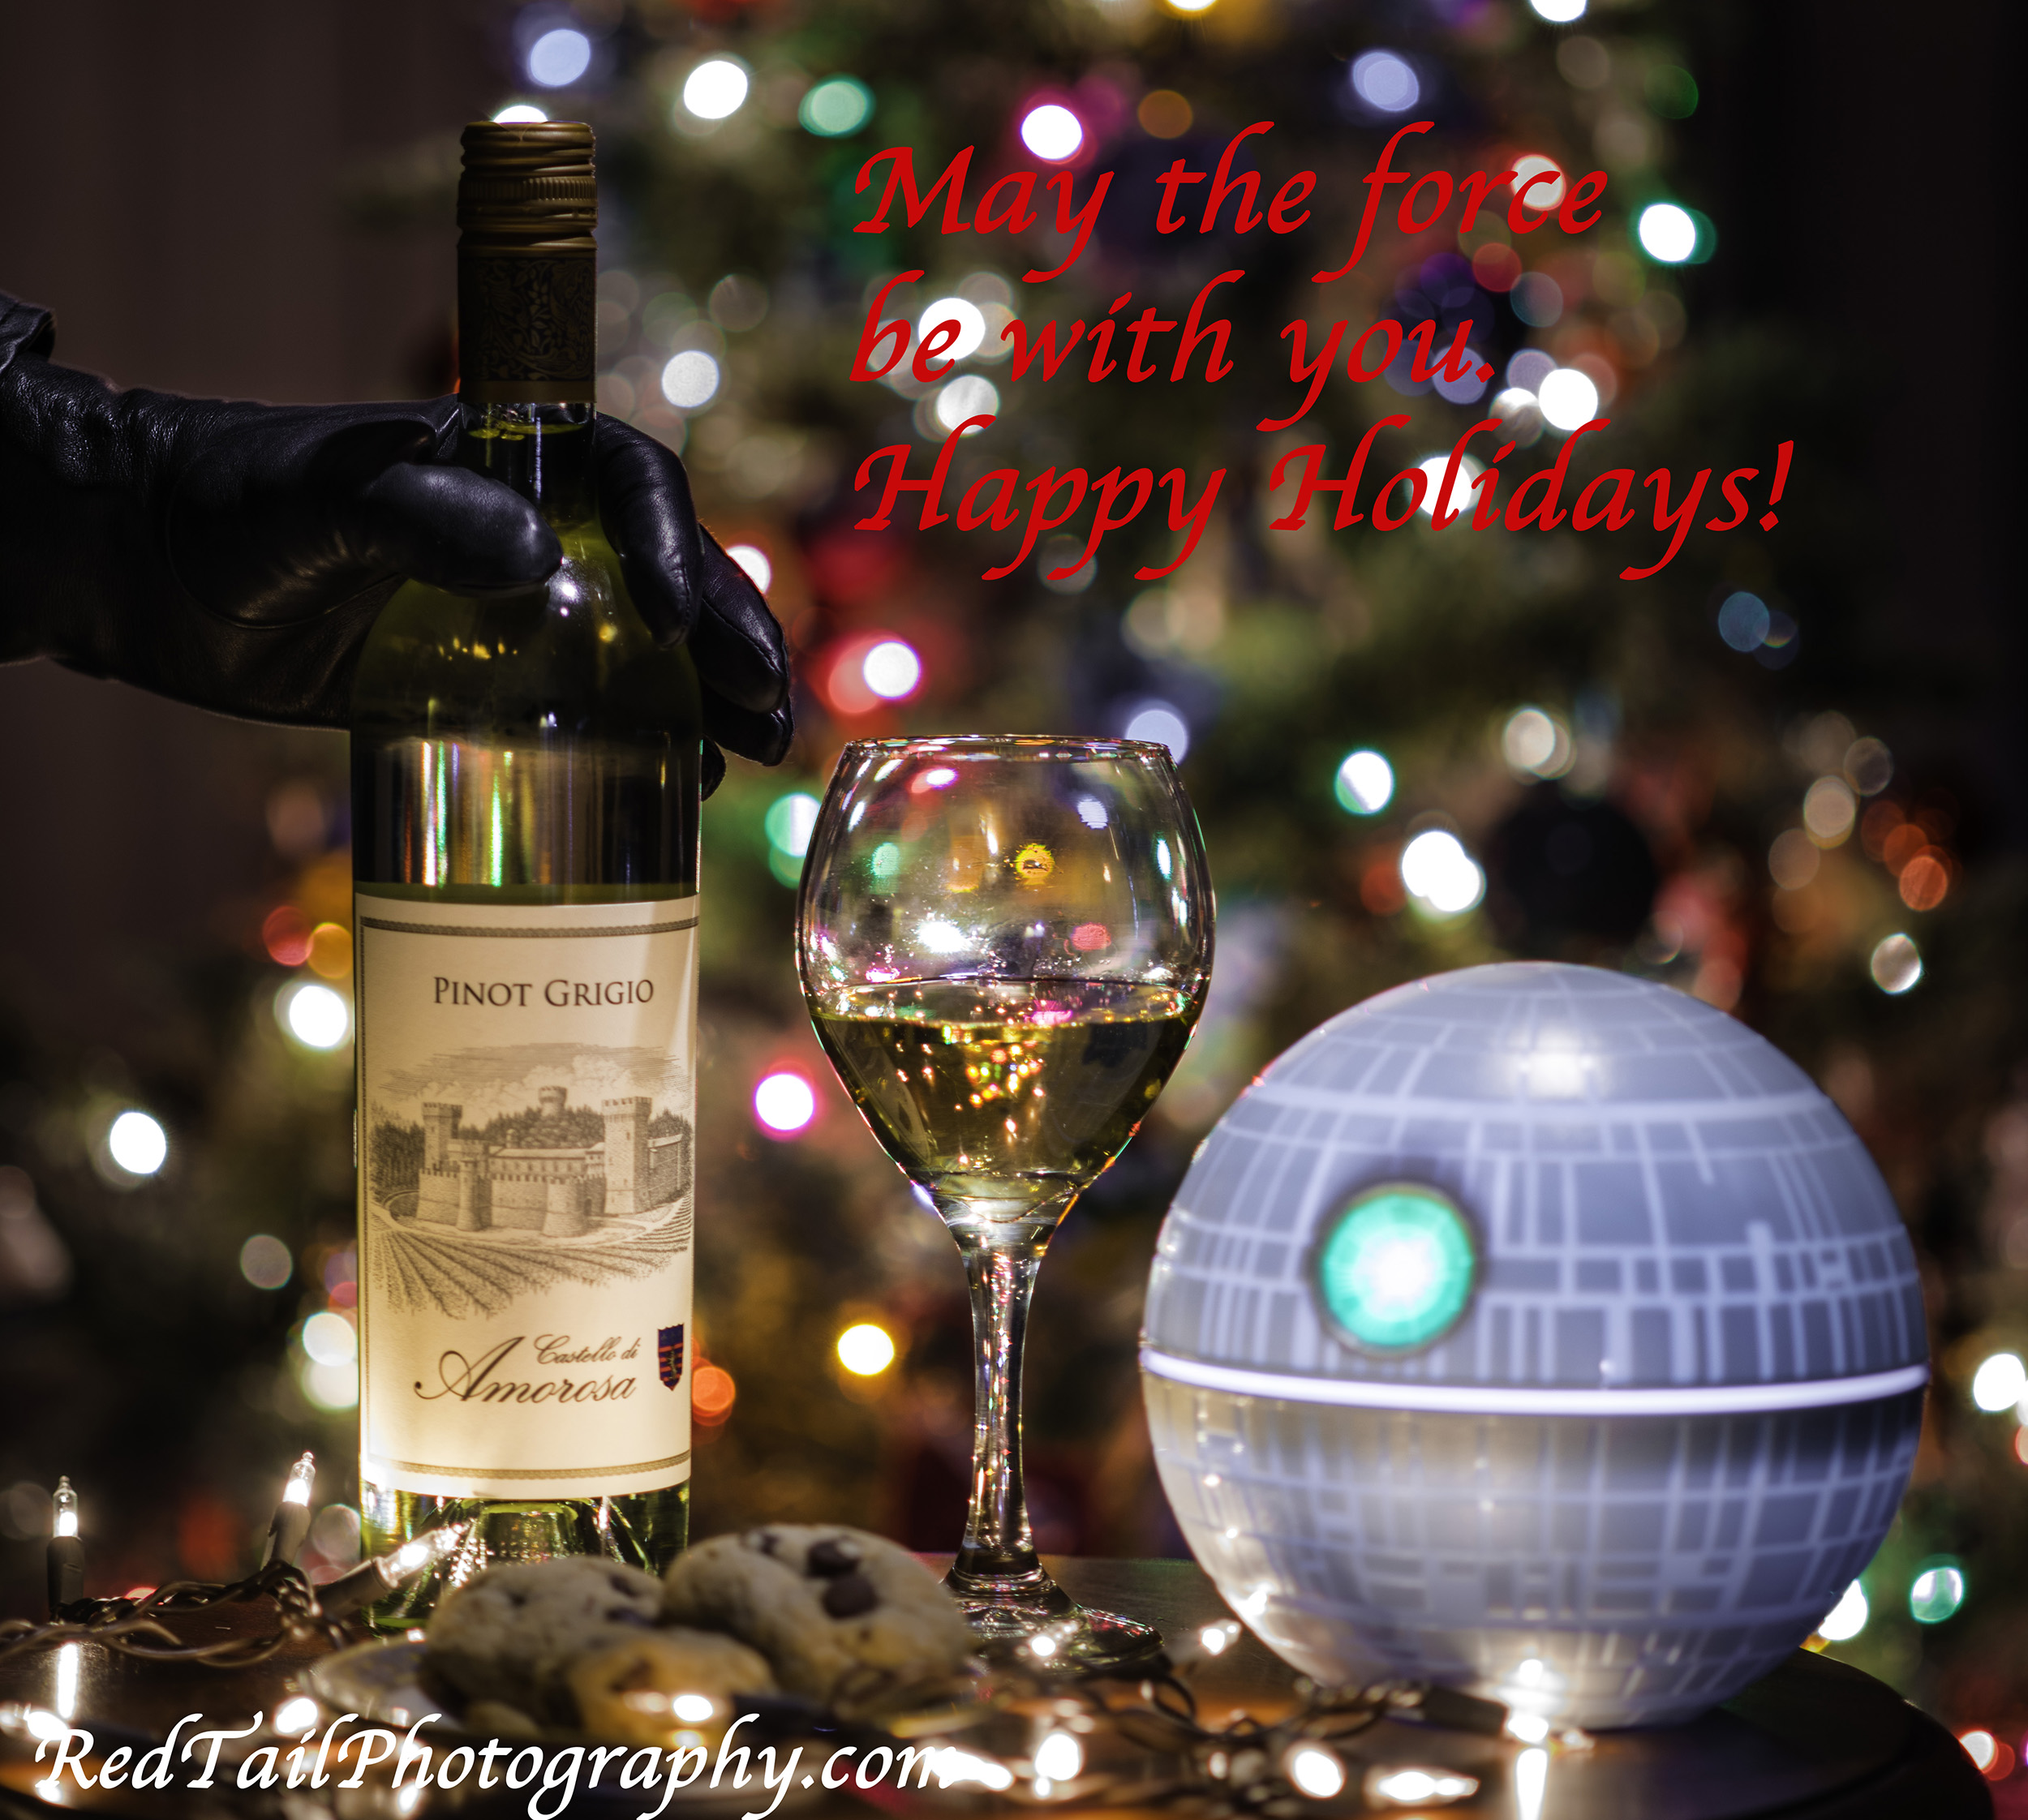 Castello di Amorosa Napa wine holiday advertising (Star Wars)